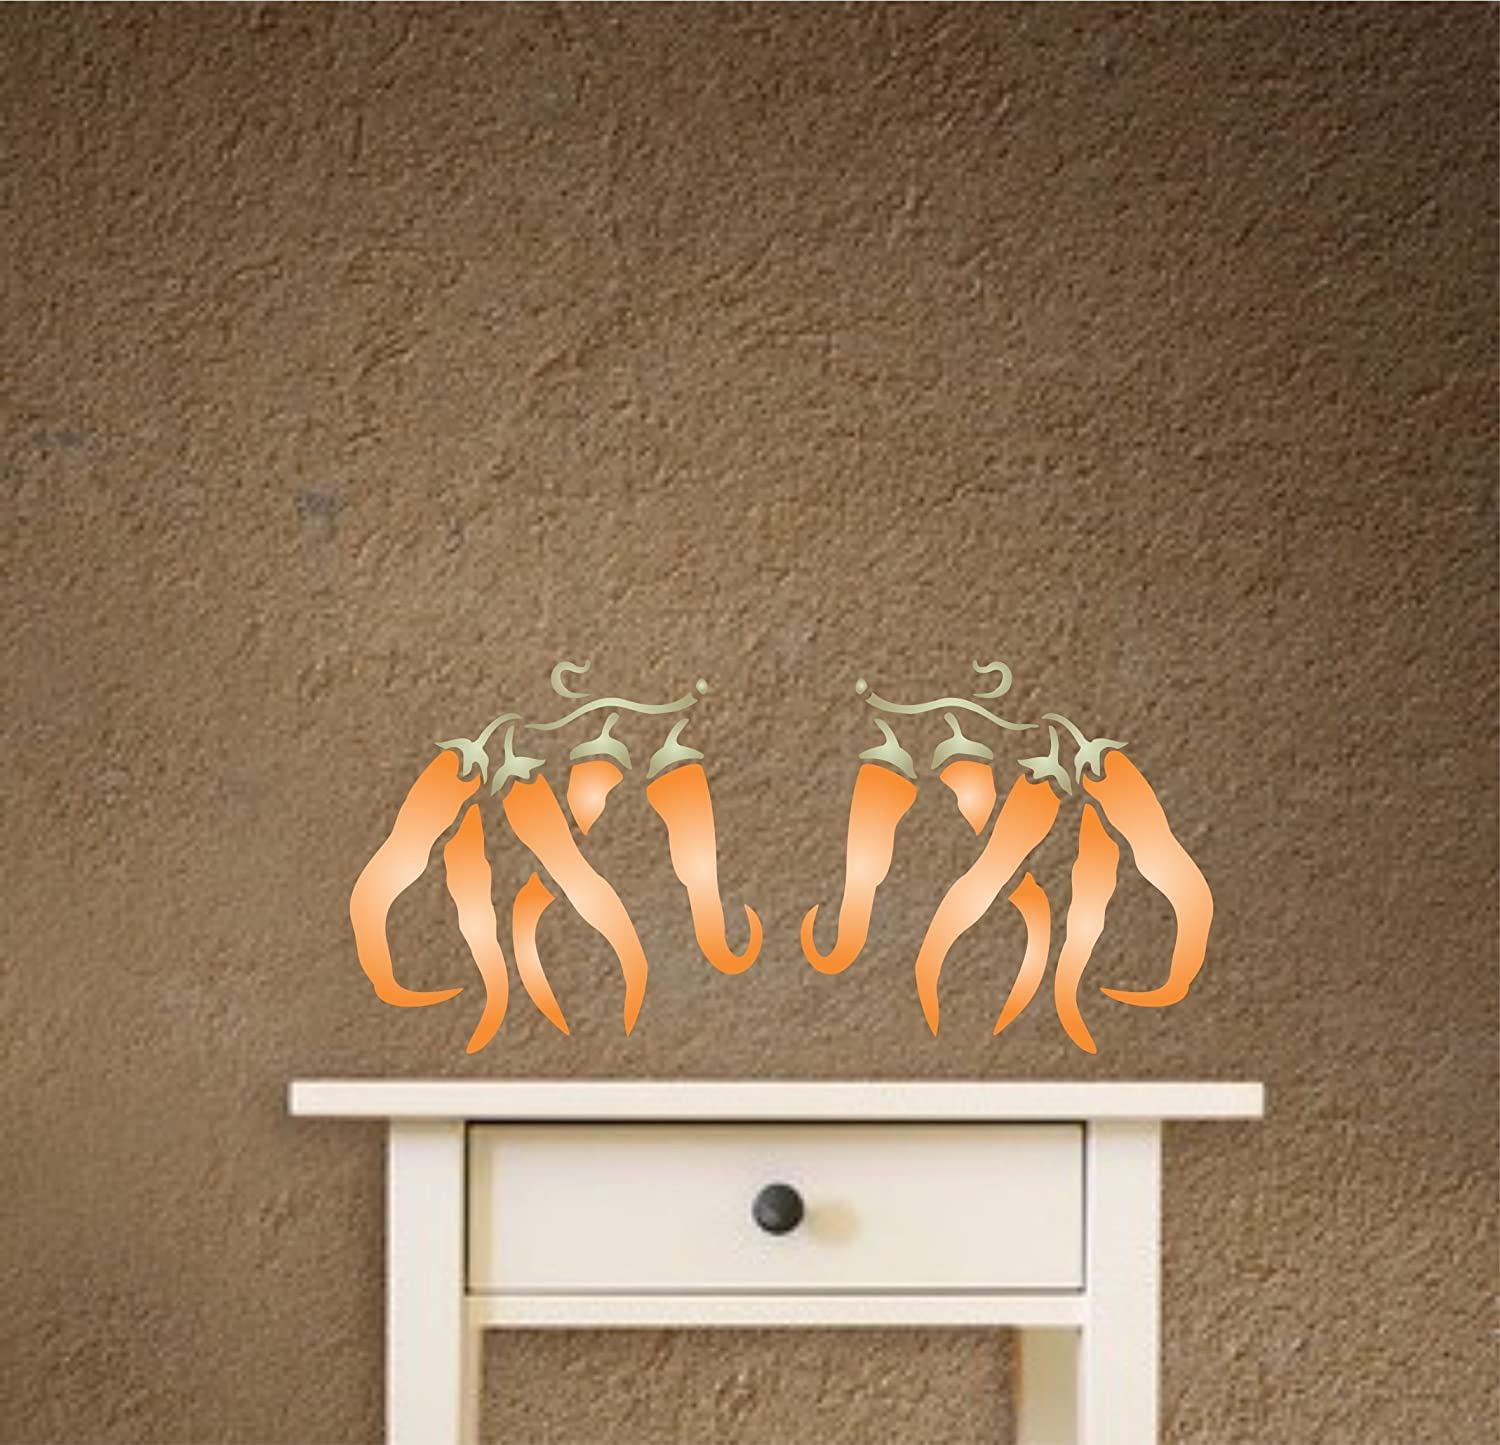 """Chili Pepper Stencil - and More/… Glass Use on Walls Terracotta Fabrics Best Quality Vegetable Kitchen Stencil Ideas size 5/""""w x 5/""""h Wood Reusable Wall Stencils for Painting Floors"""